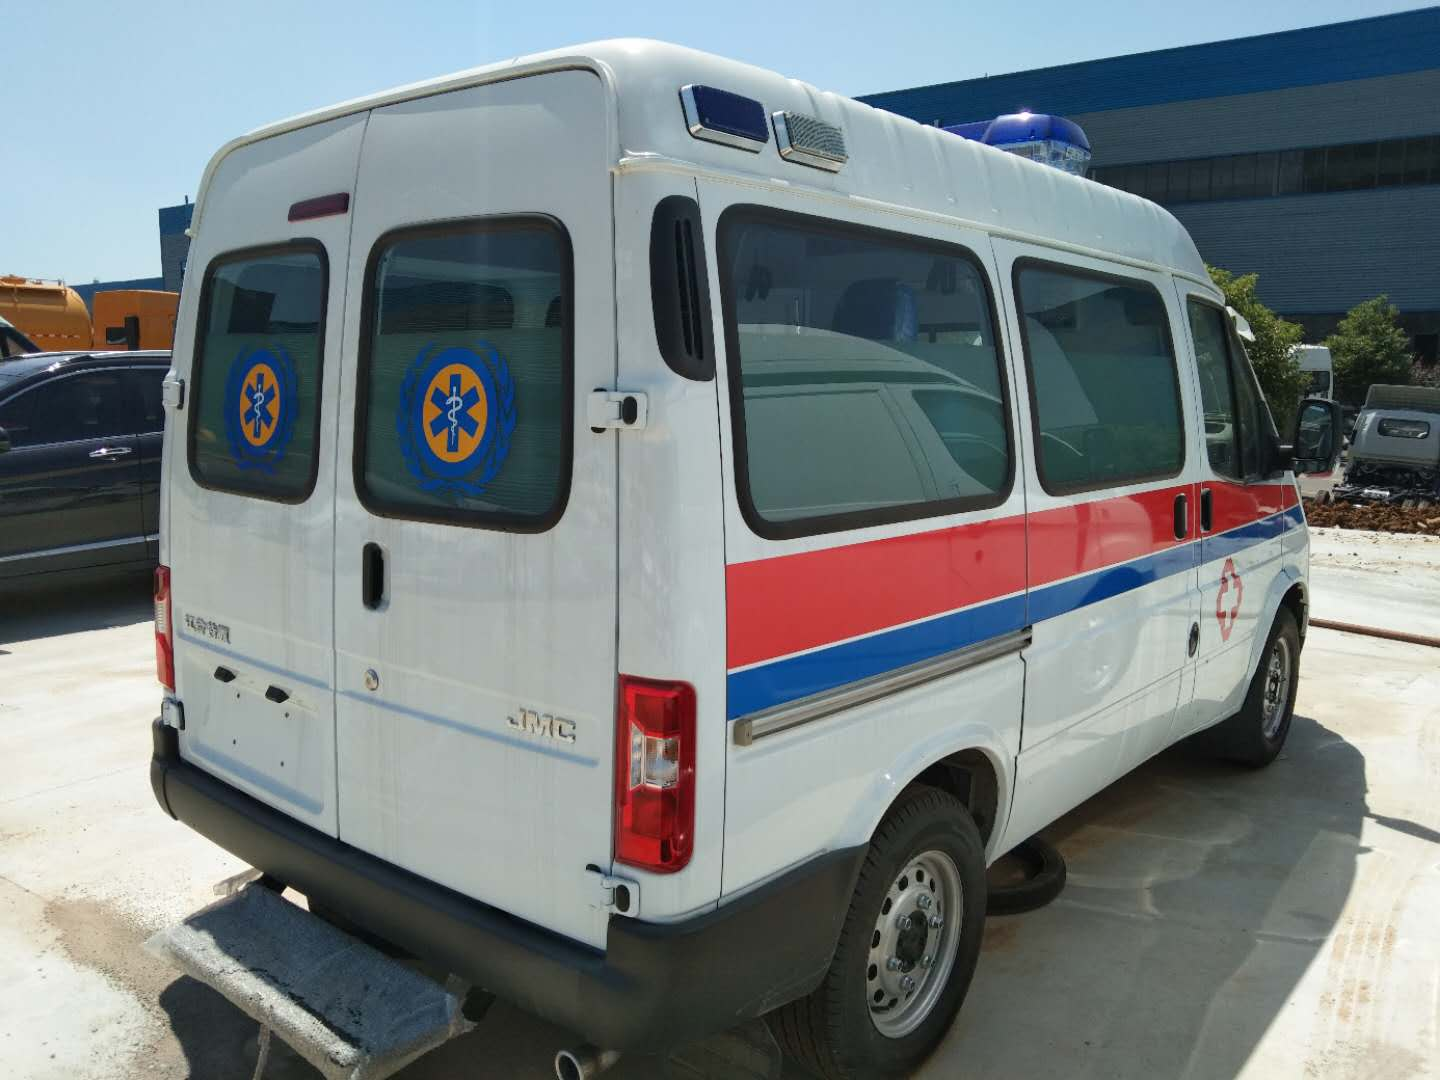 New Ambulance Vehicles for Fighting COVID-19_3